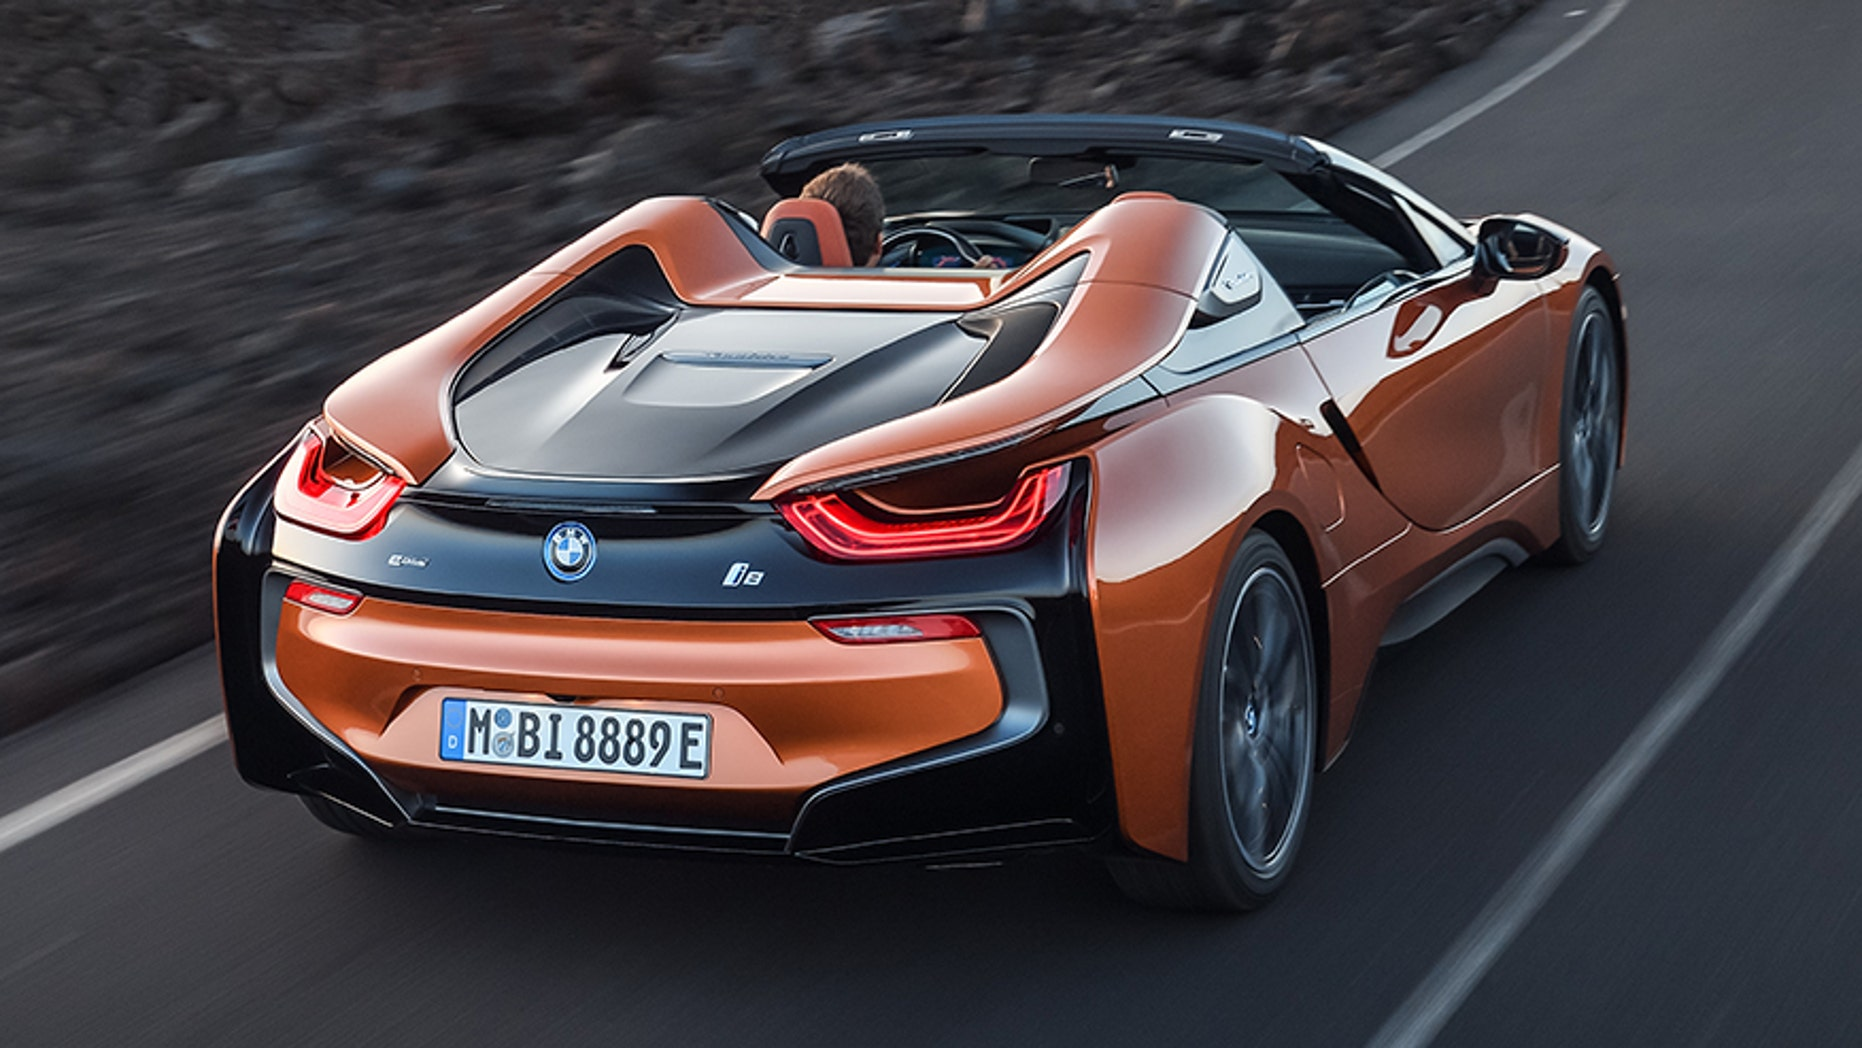 La Auto Show The 2019 Bmw I8 Roadster Is An Electrifying Way To Go